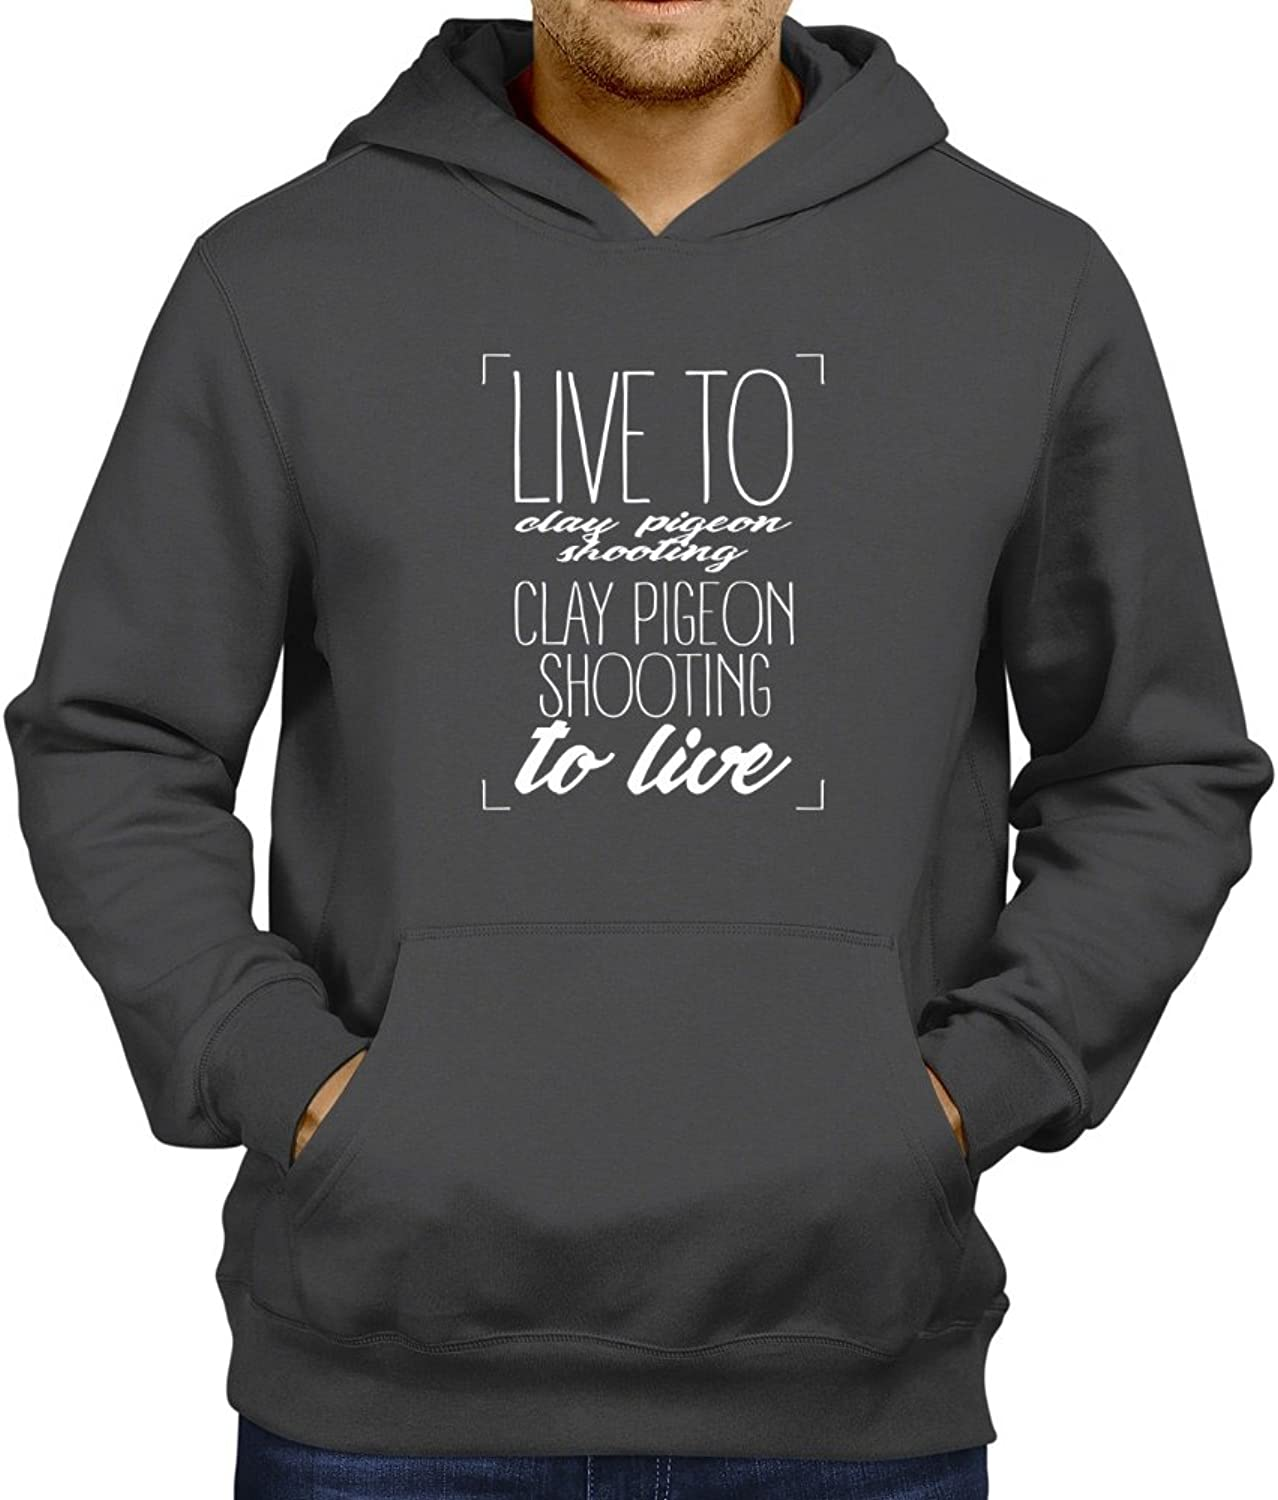 - Live to Clay Pigeon Pigeon Pigeon Shooting, Clay Pigeon Shooting to live 2 Hoodie c03bf7